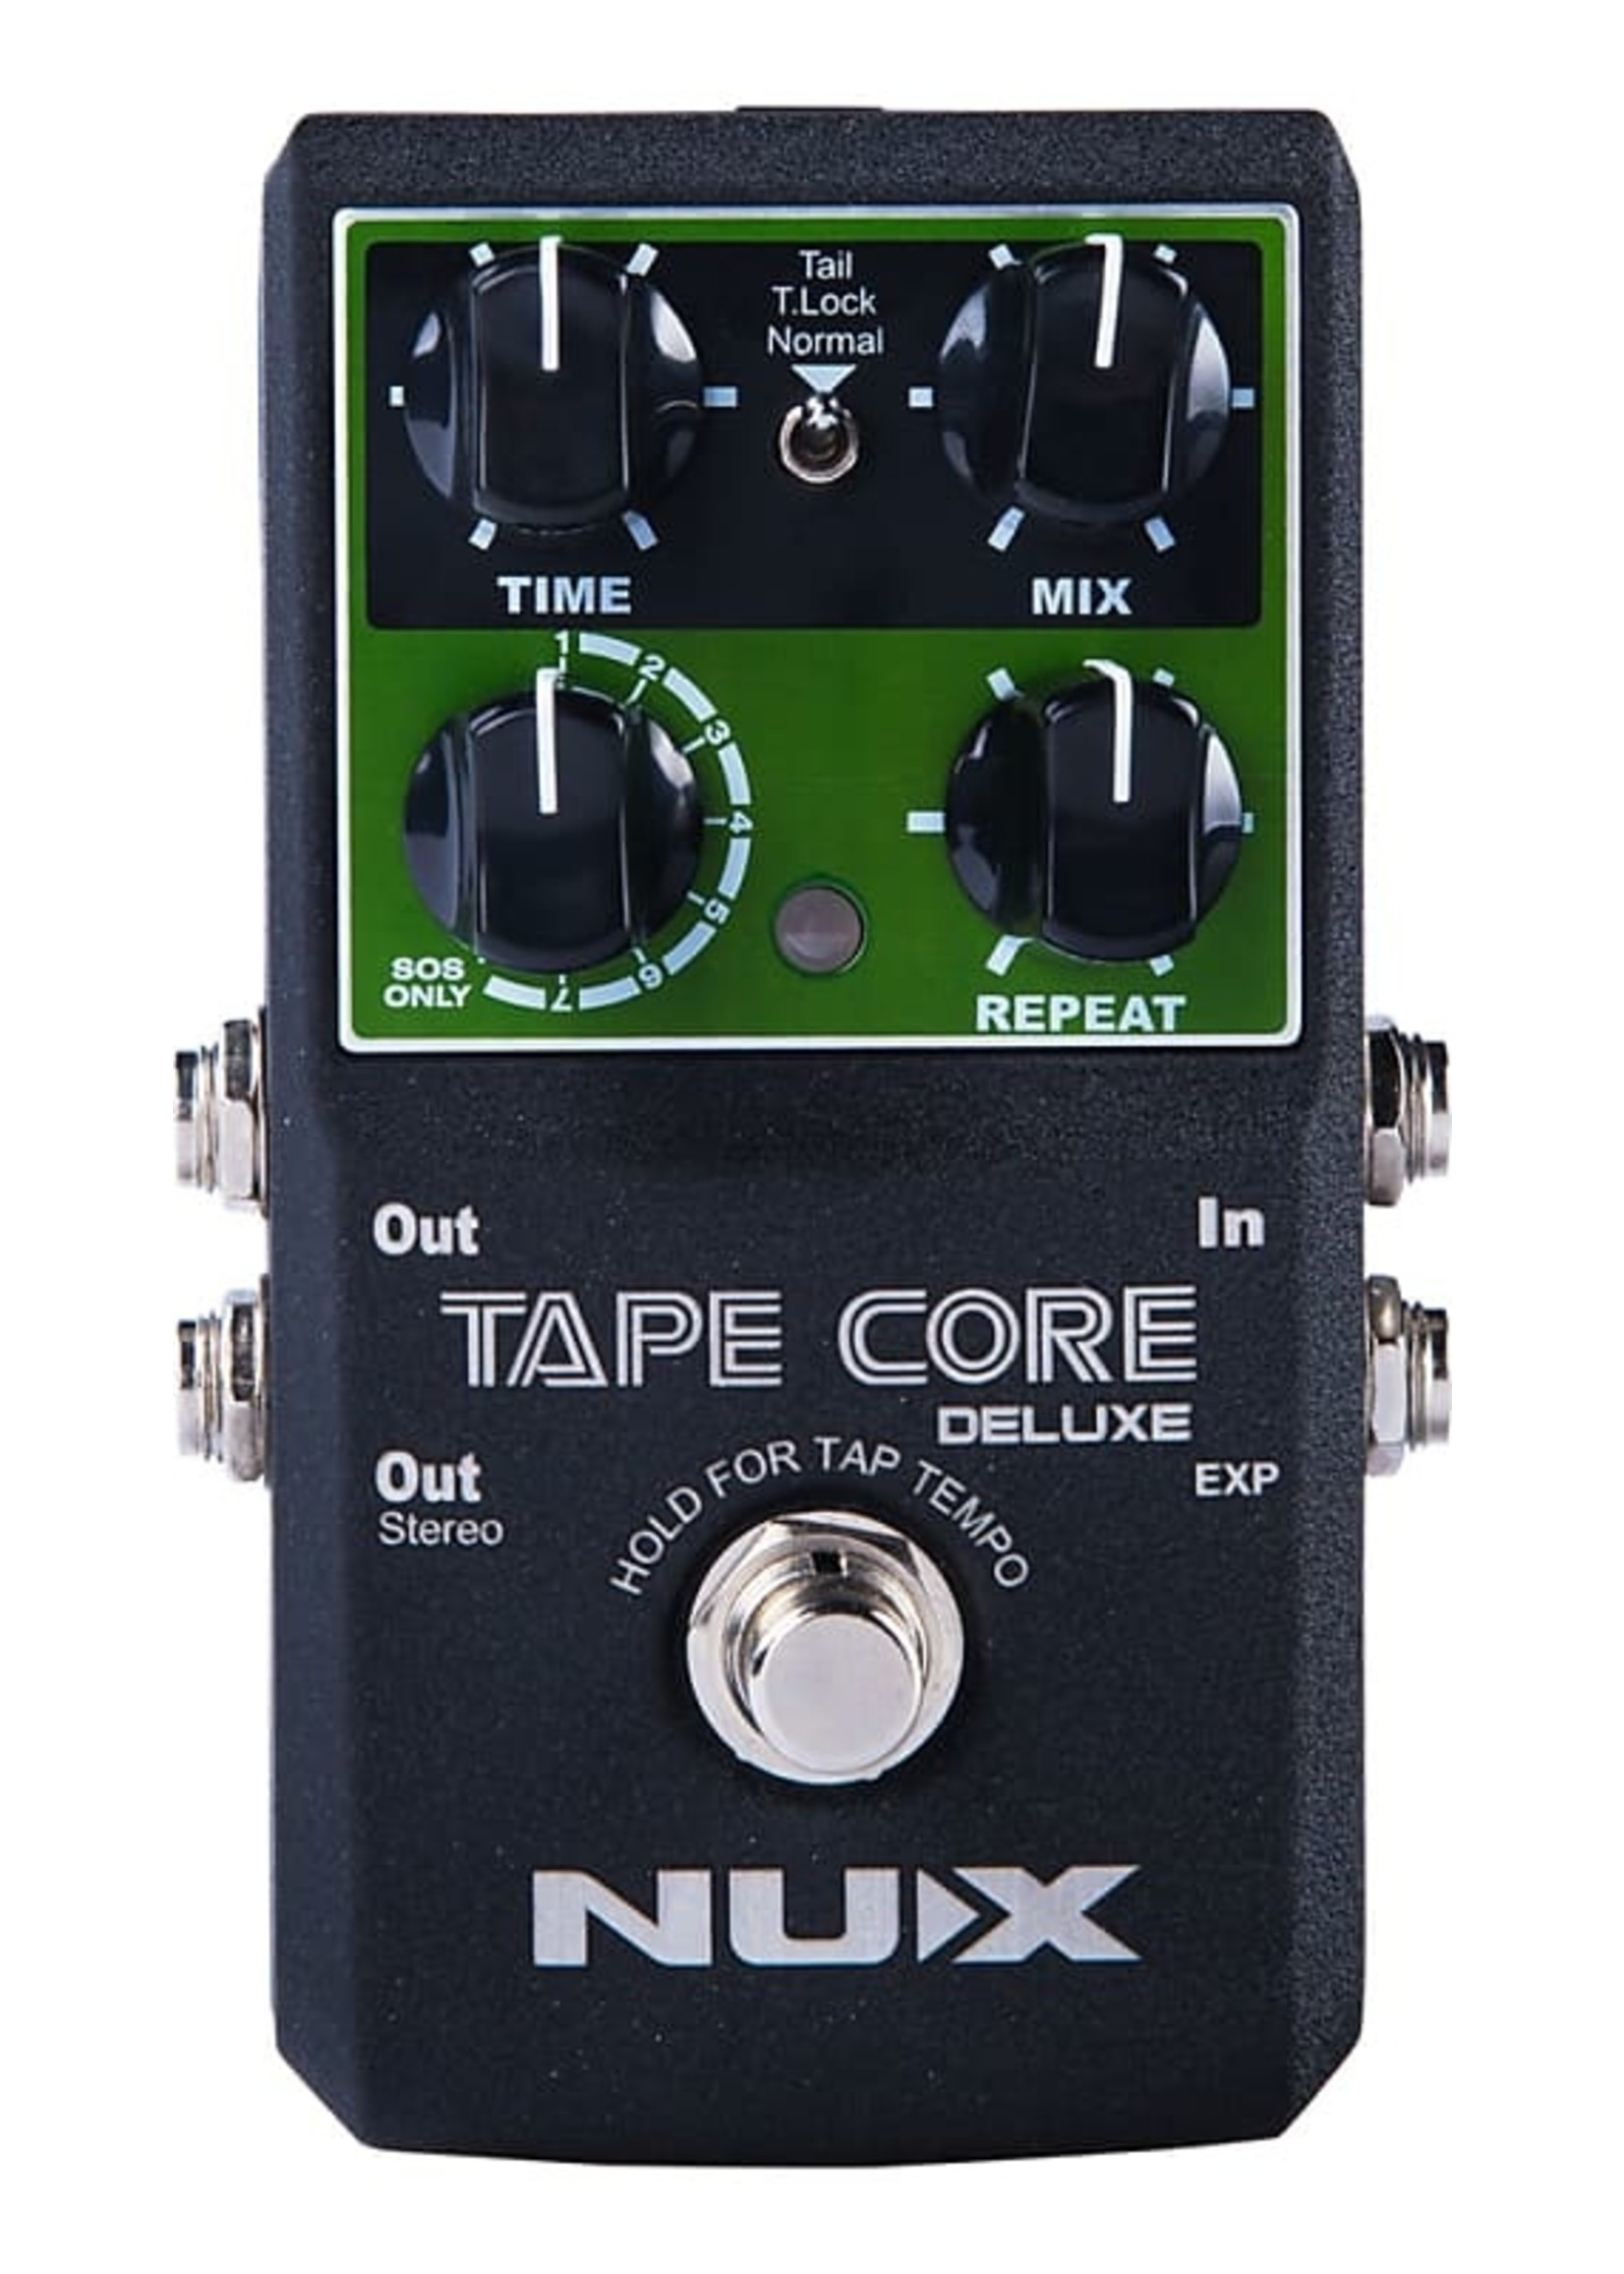 NuX NuX Tape Core Deluxe Delay Pedal